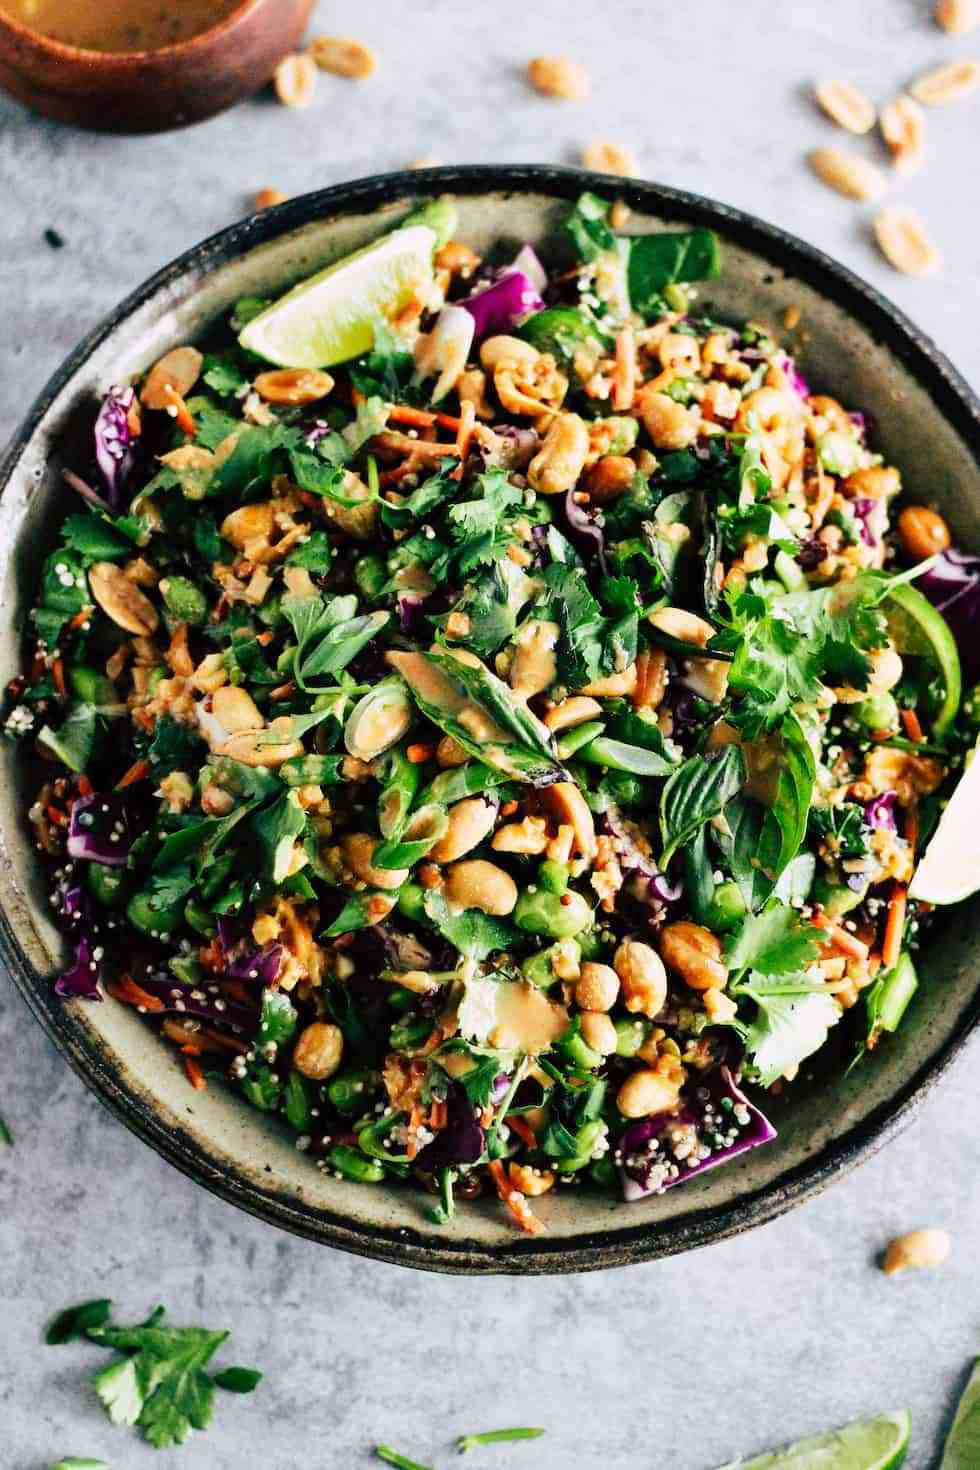 Edamame salad with peanuts is an easy college meal